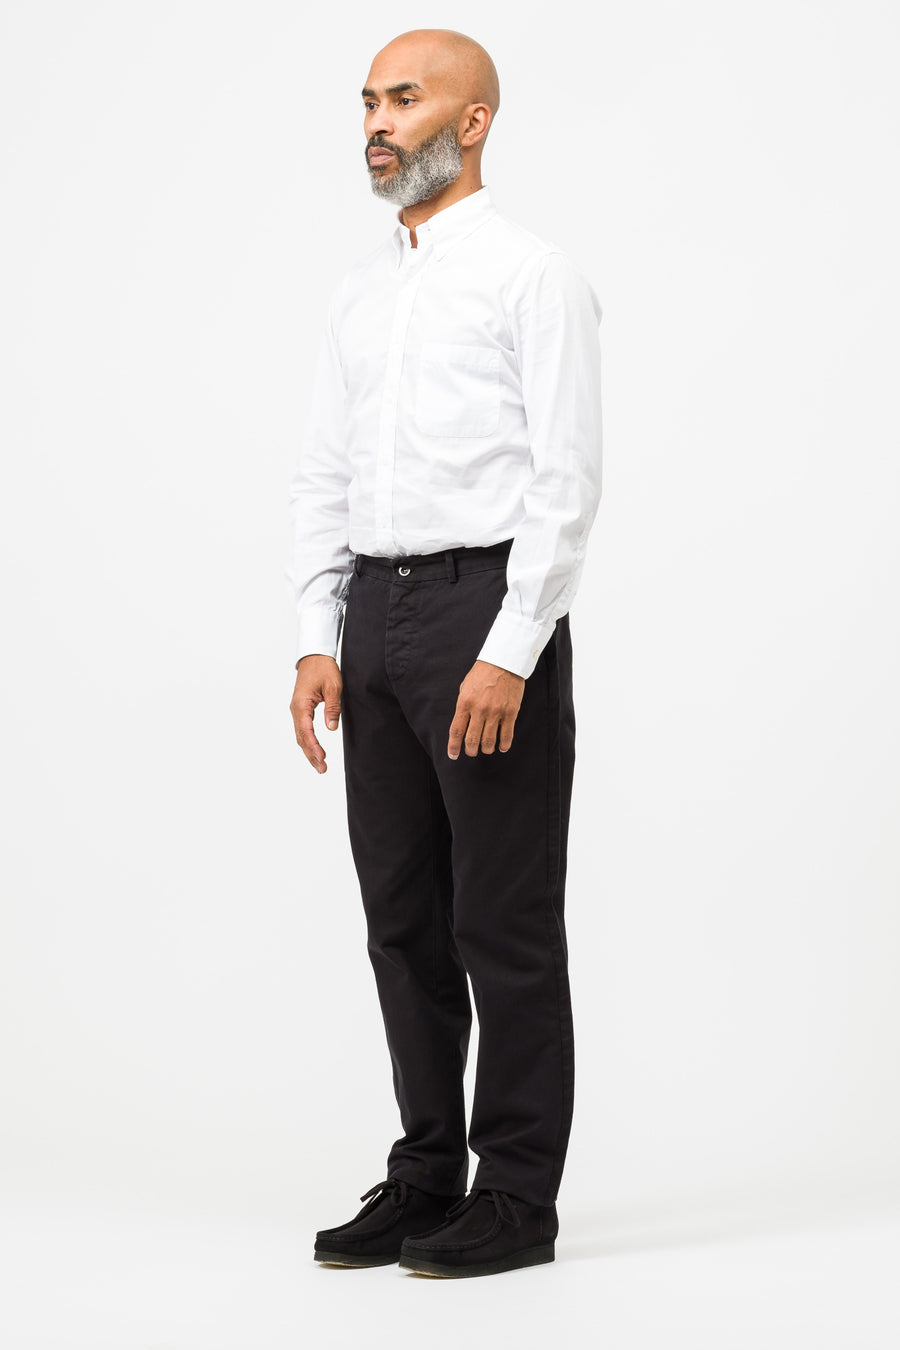 Maison Margiela Trousers in Black - Notre